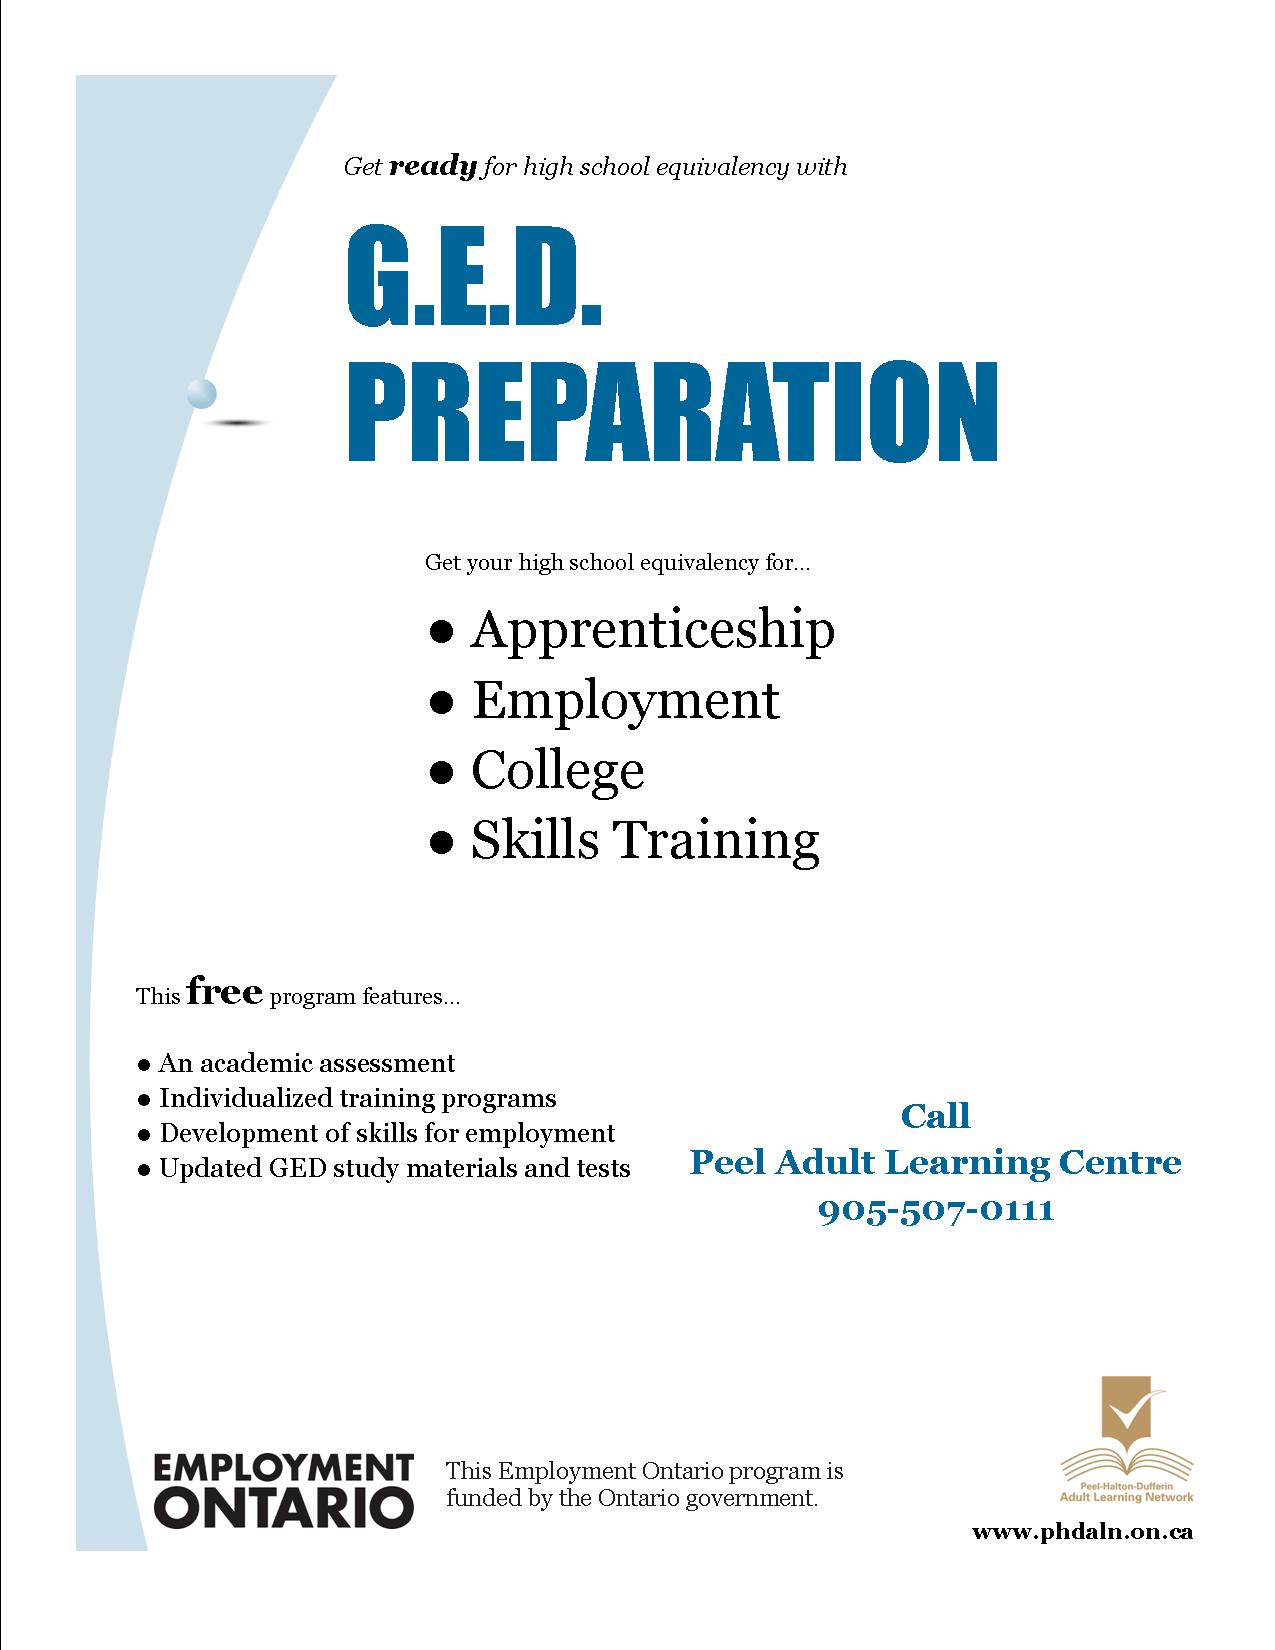 Peel Adult Learning Centre flyer